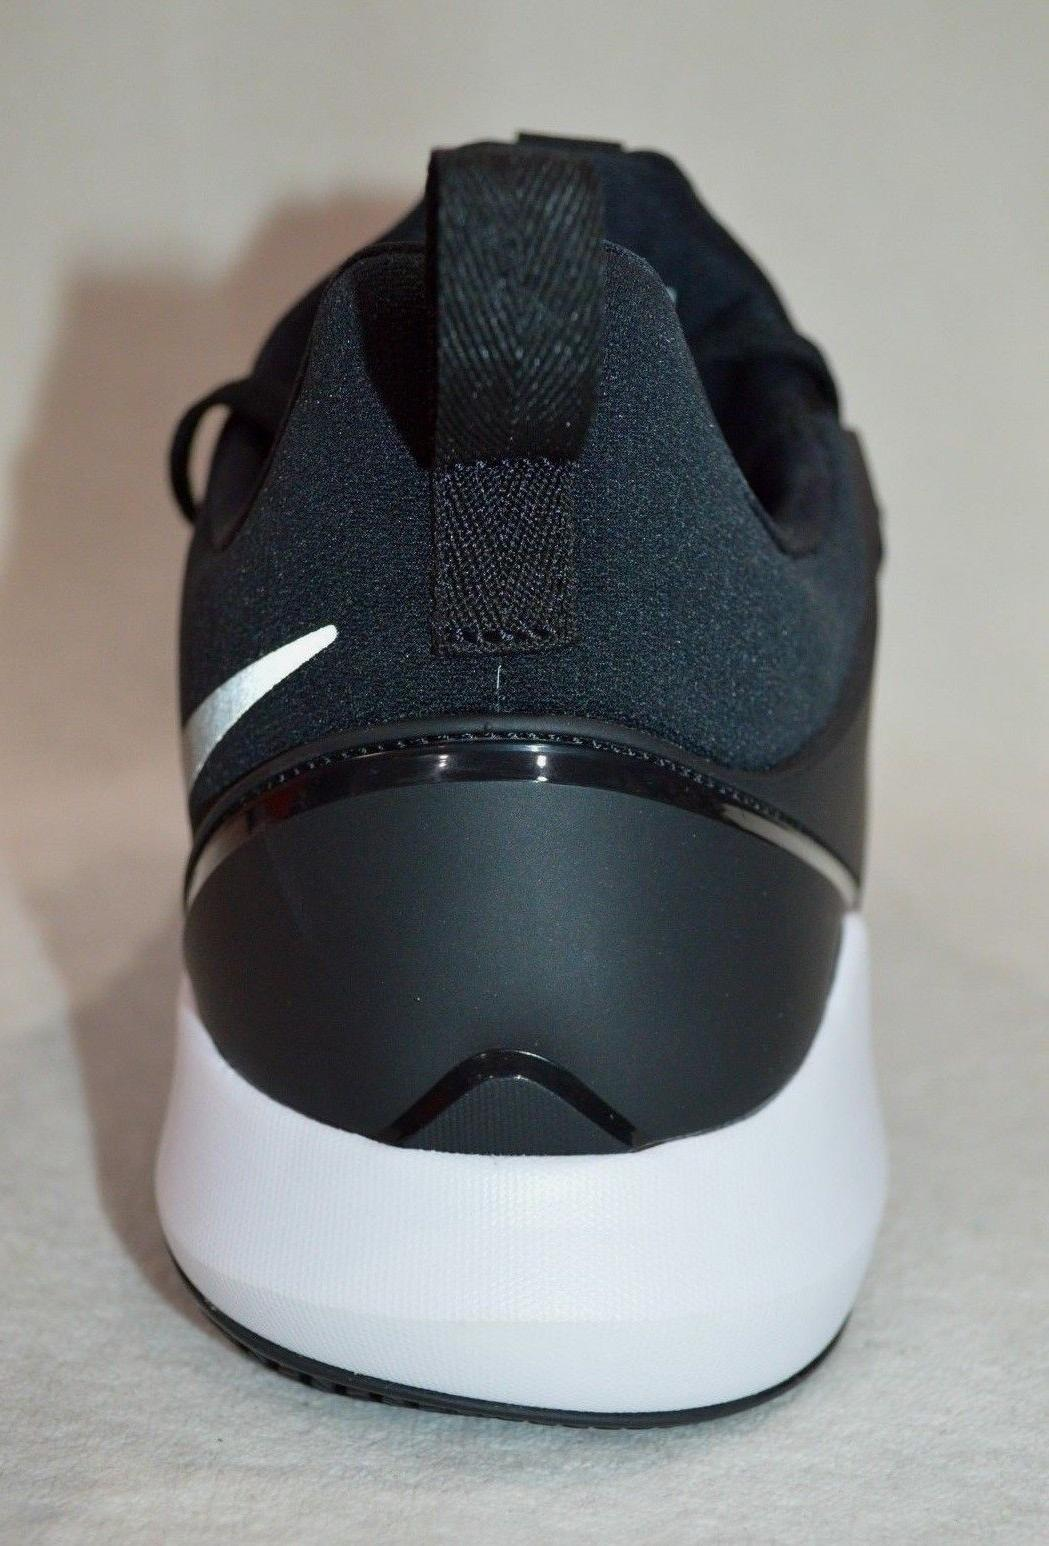 Nike Zoom Black/White Basketball 10.5/11/11.5/12